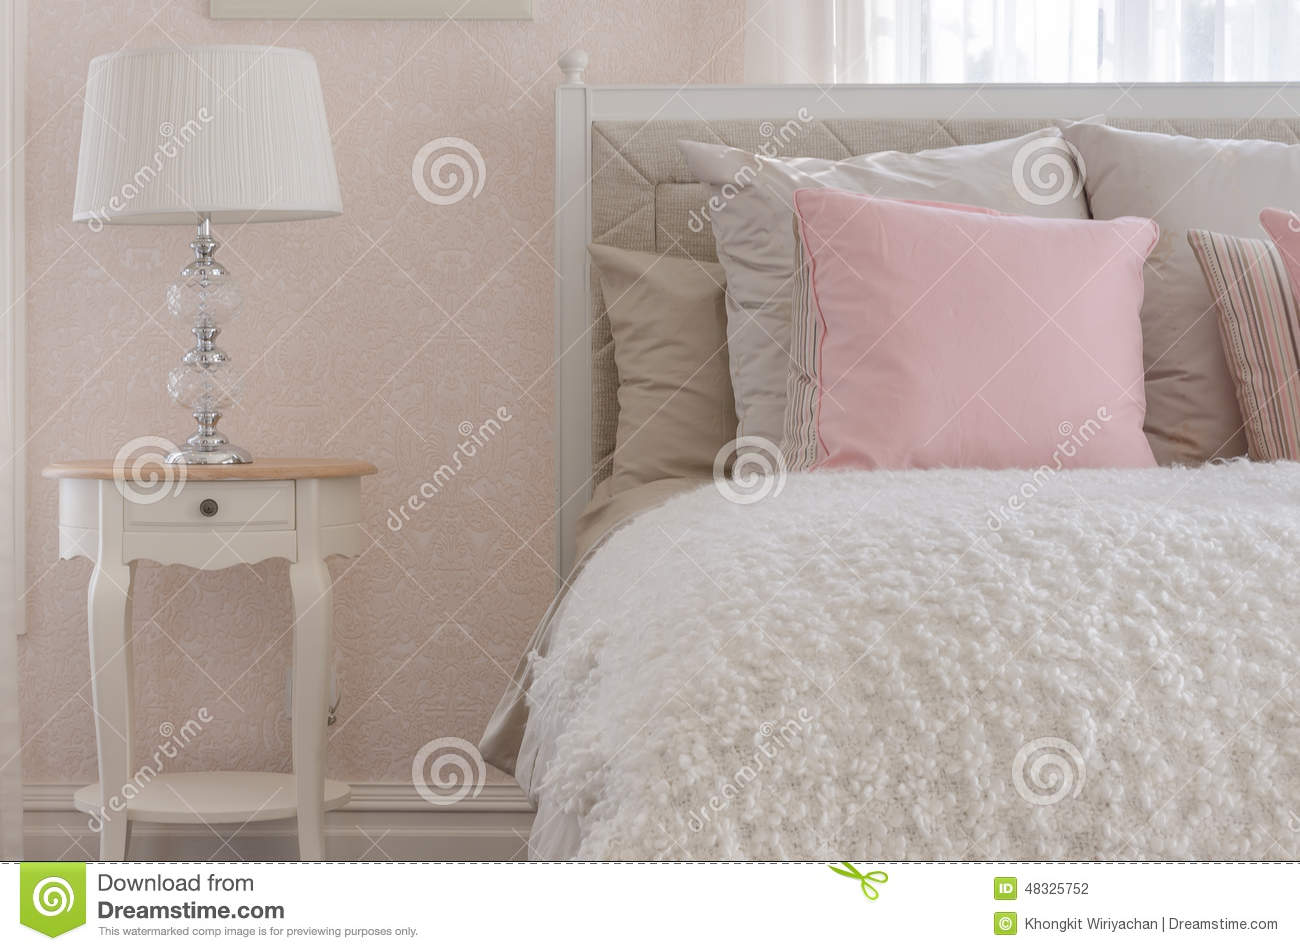 oreiller rose sur le lit de luxe blanc dans la chambre coucher photo stock image 48325752. Black Bedroom Furniture Sets. Home Design Ideas